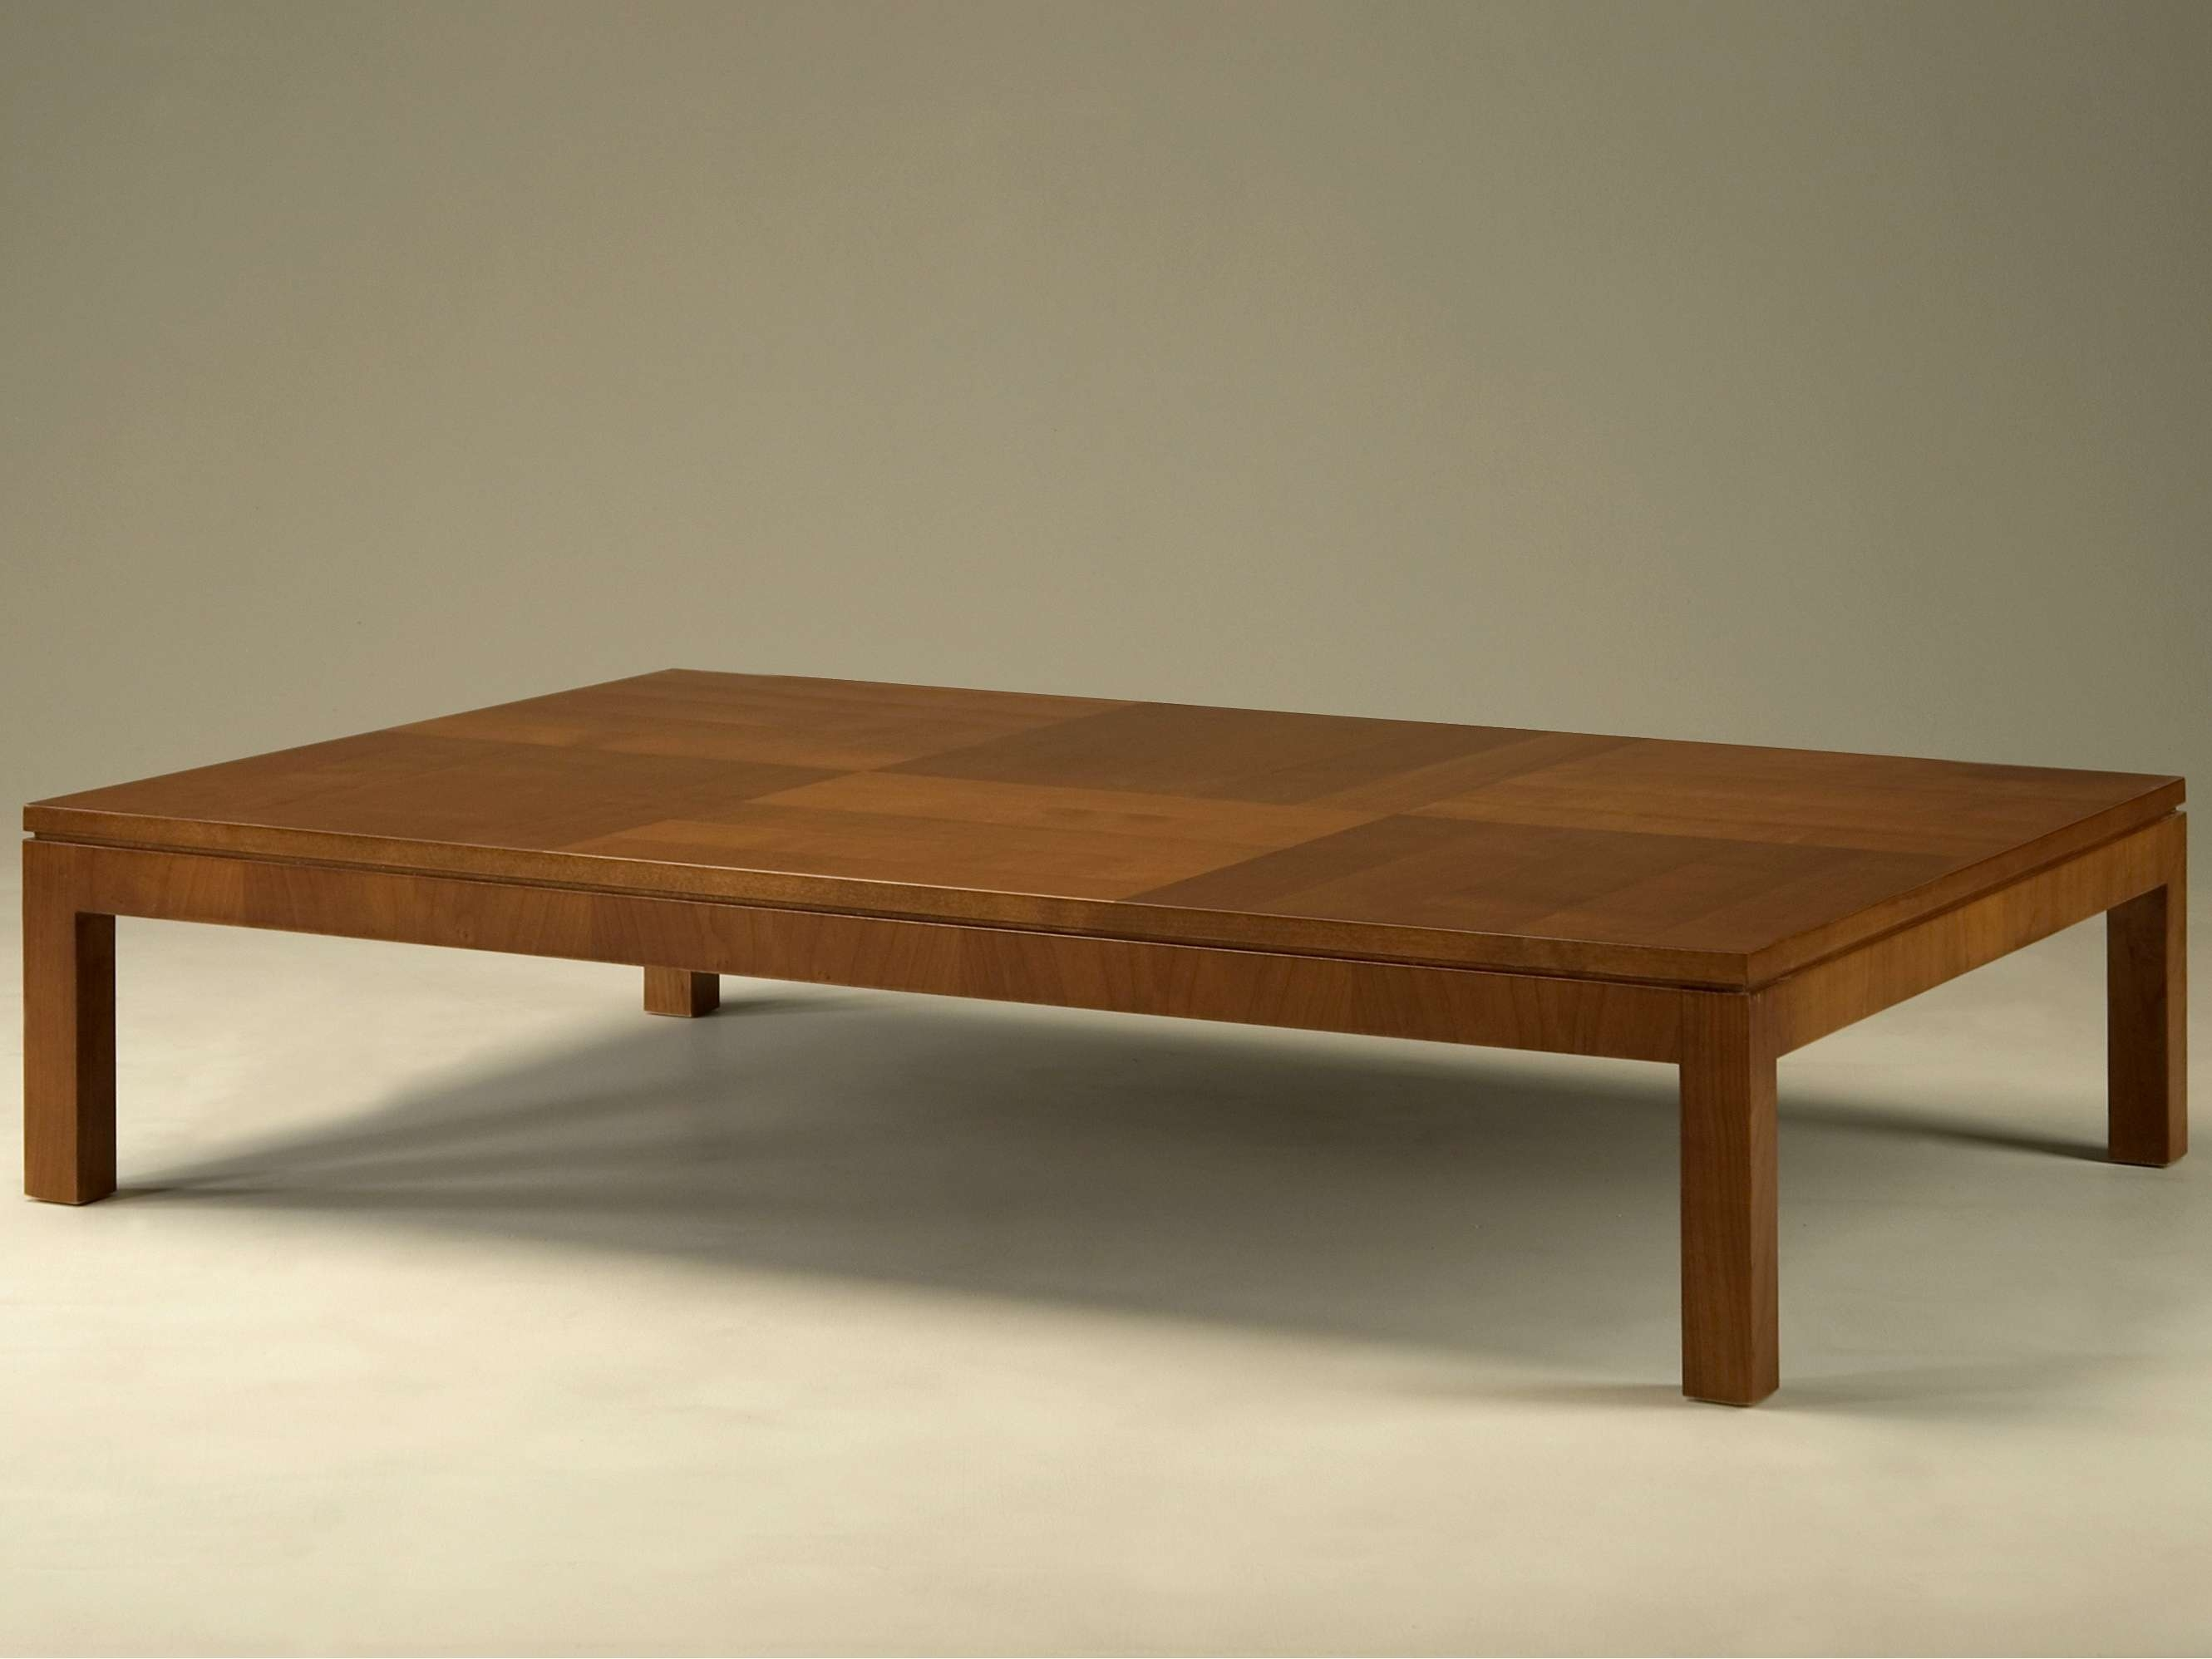 Preferred Large Wood Coffee Tables Regarding Coffee Table : Amazing Side Table Coffee Table And End Tables (View 15 of 20)